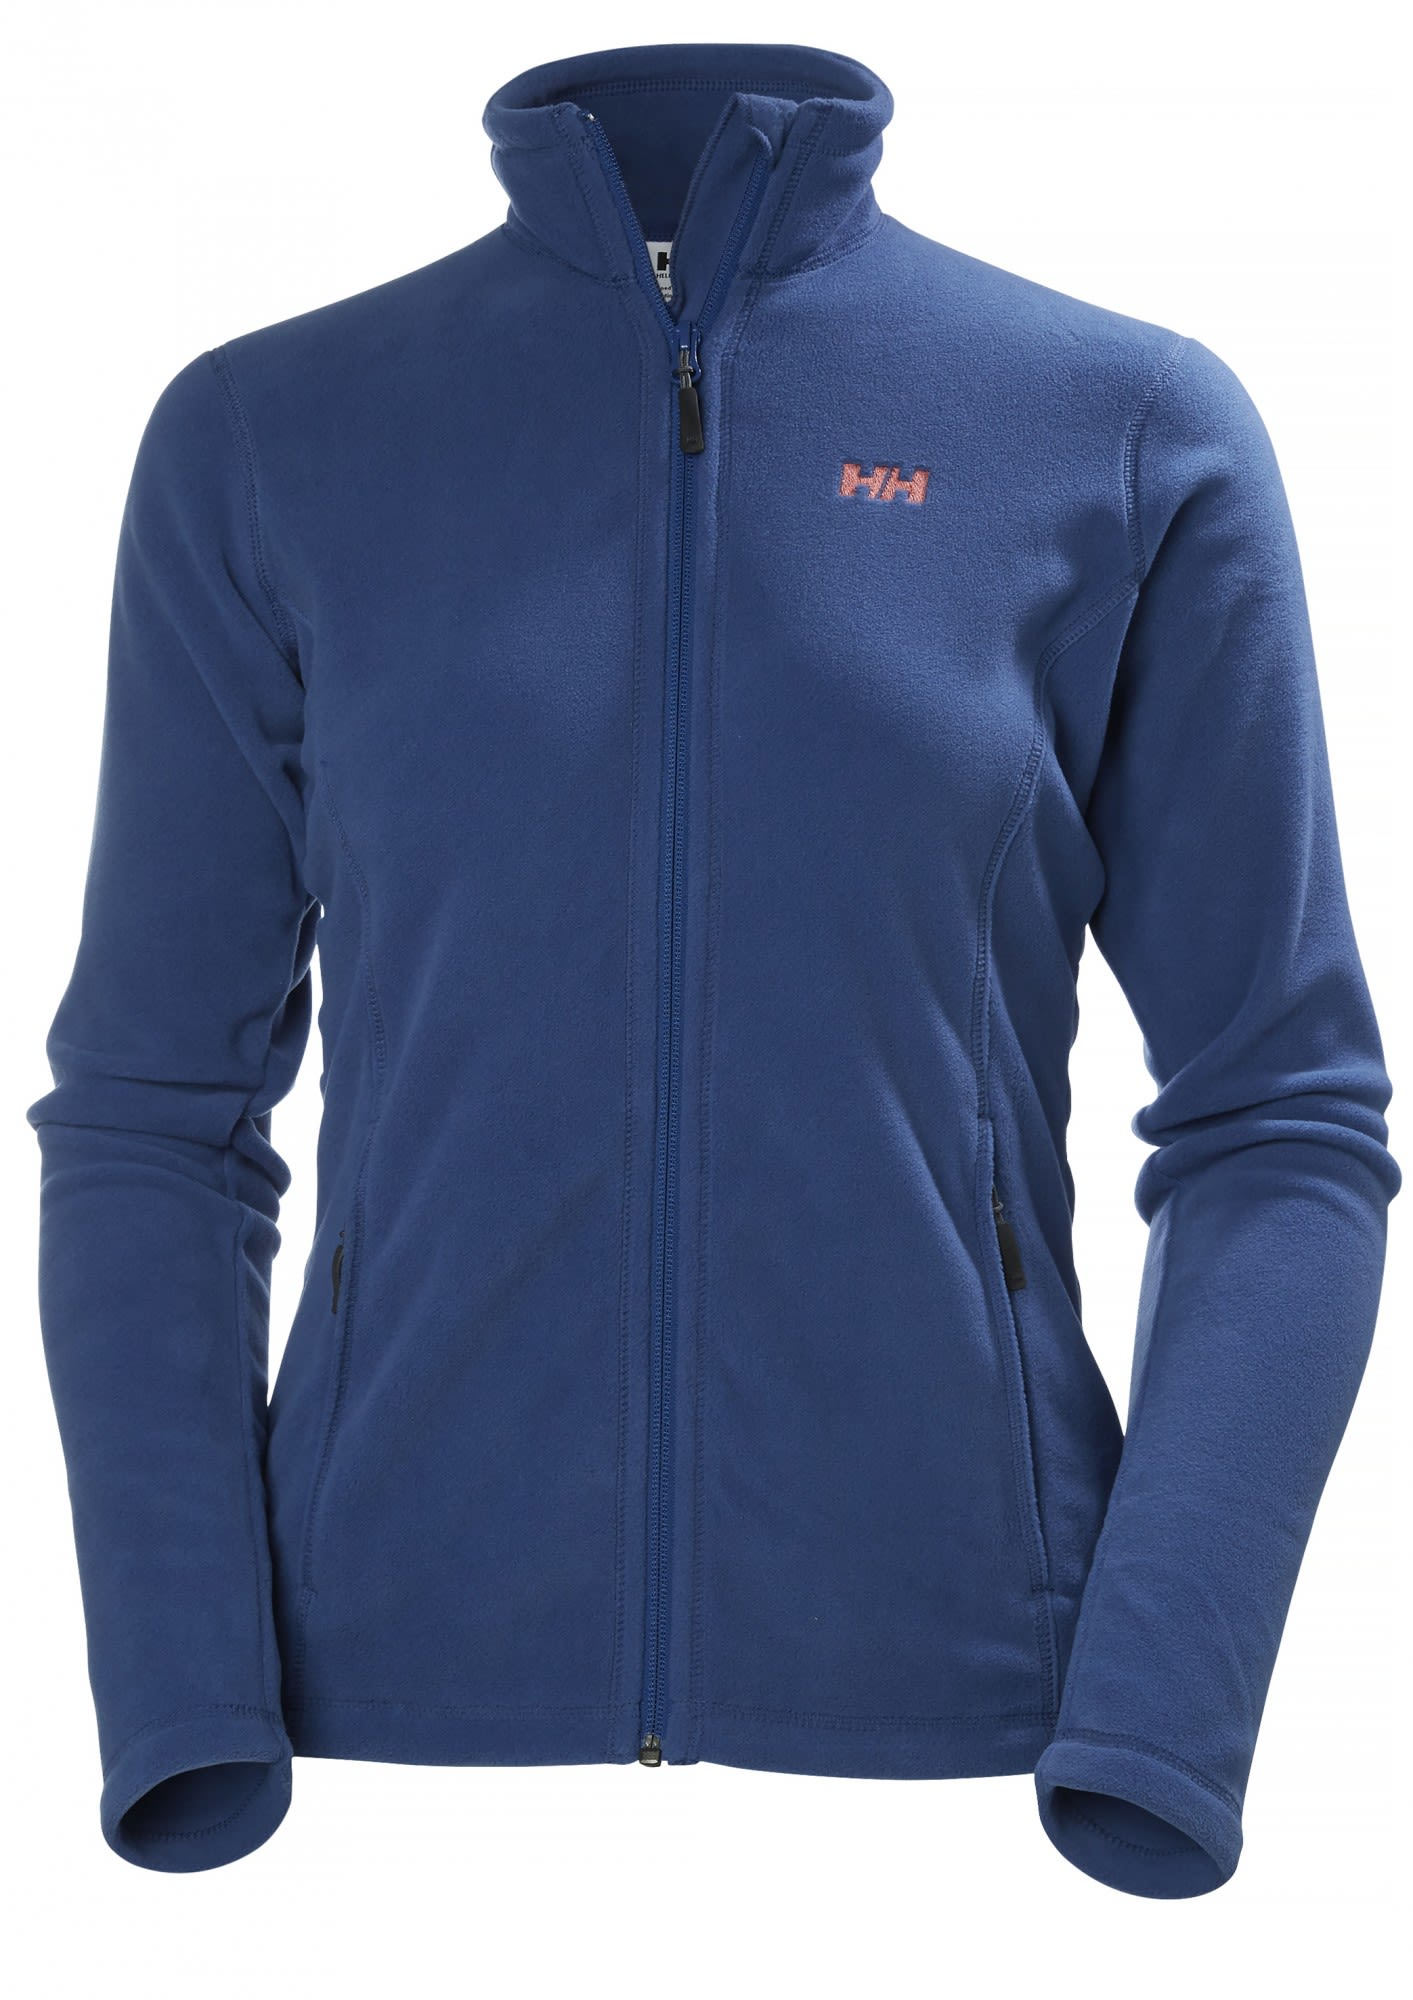 Helly Hansen Daybreaker Fleece Jacket (Modell Winter 2017) Blau, Female Polartec